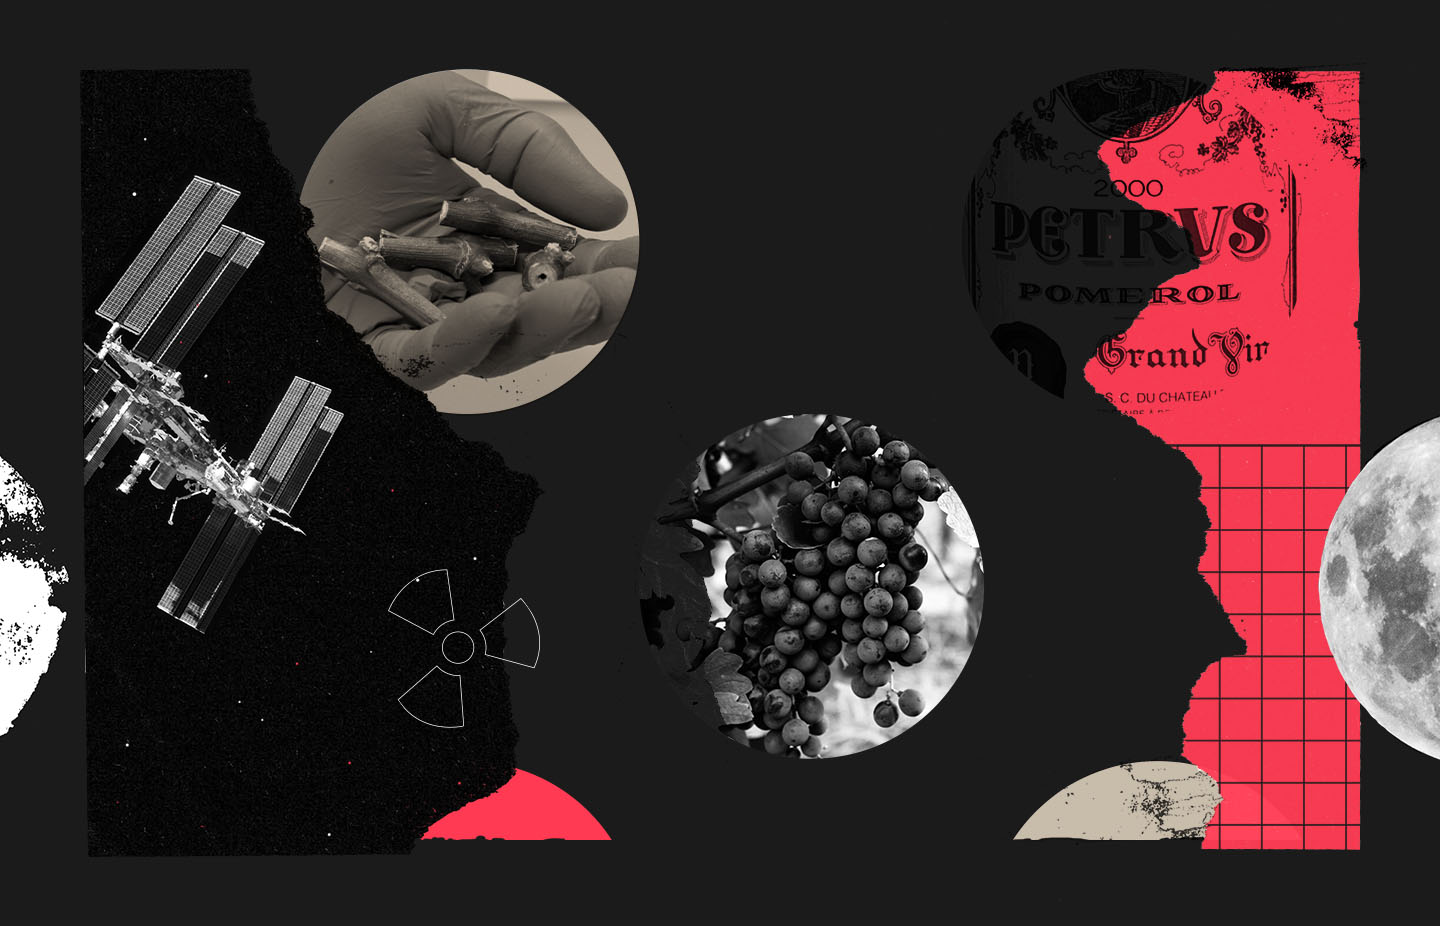 A collage of space and wine focused iconography and imagery.